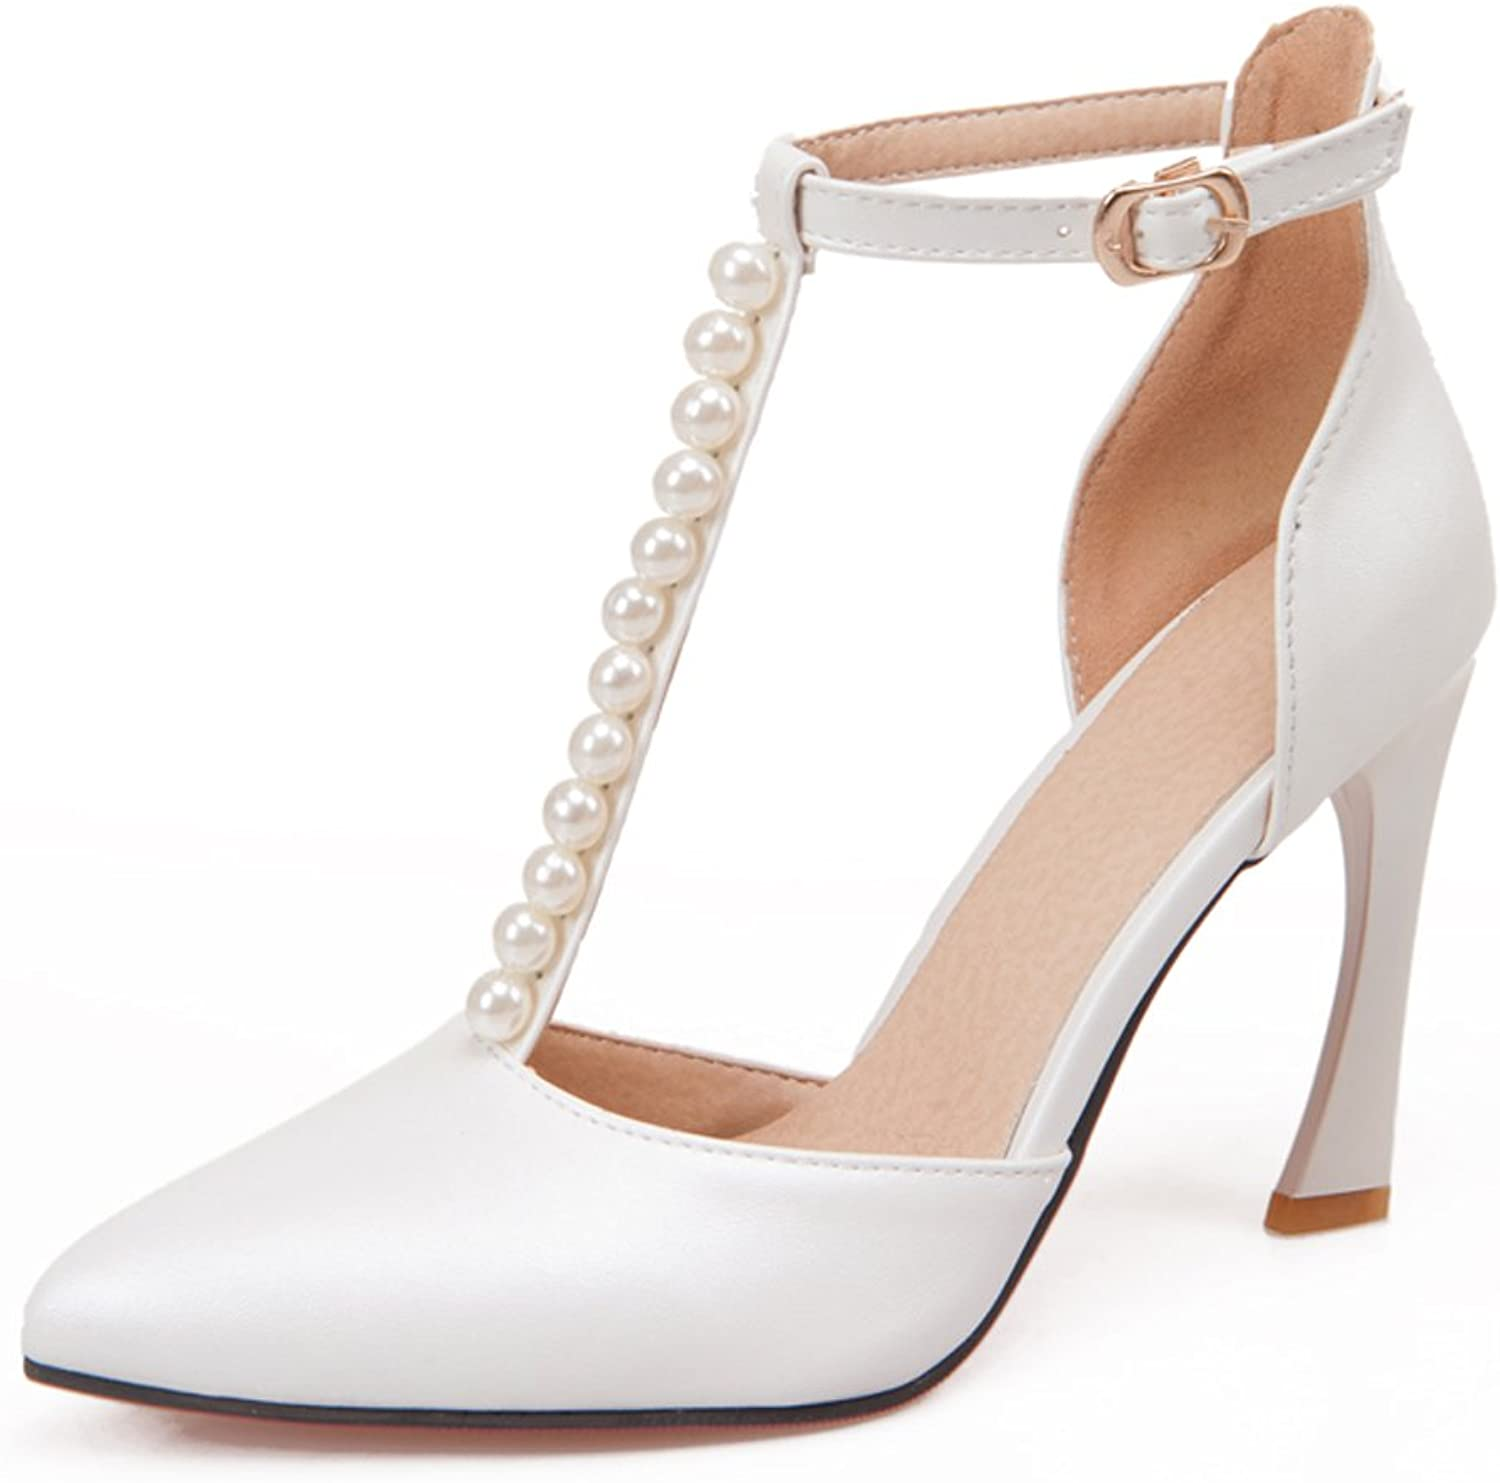 AIWEIYi Womens Pearl Chains Ankle Strap Pointed Toe High Heel Sandals White